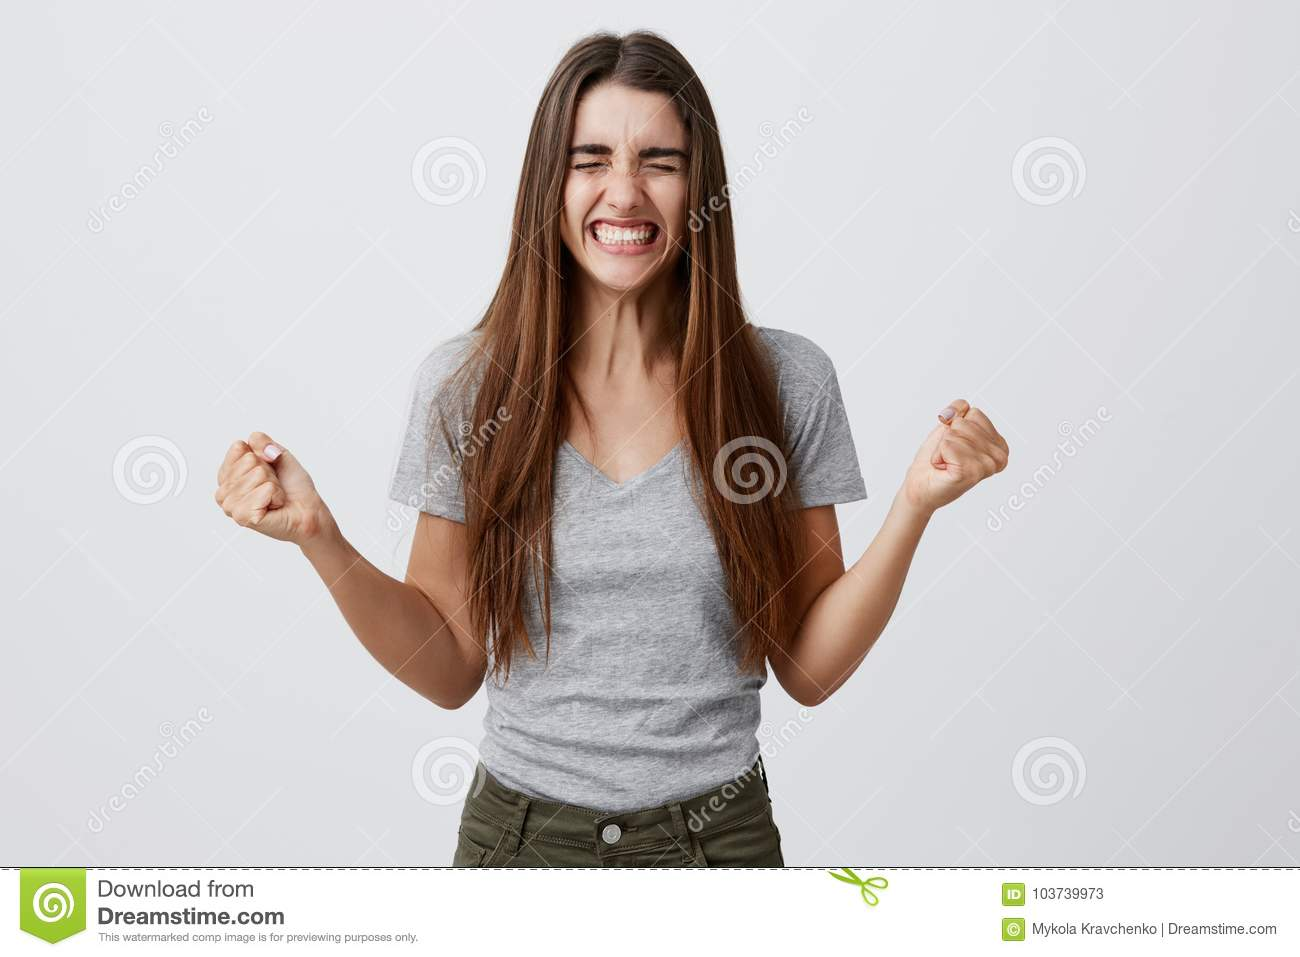 Portrait of young joyful happy beautiful female student with long dark hair in casual gray outfit smiling with teeth